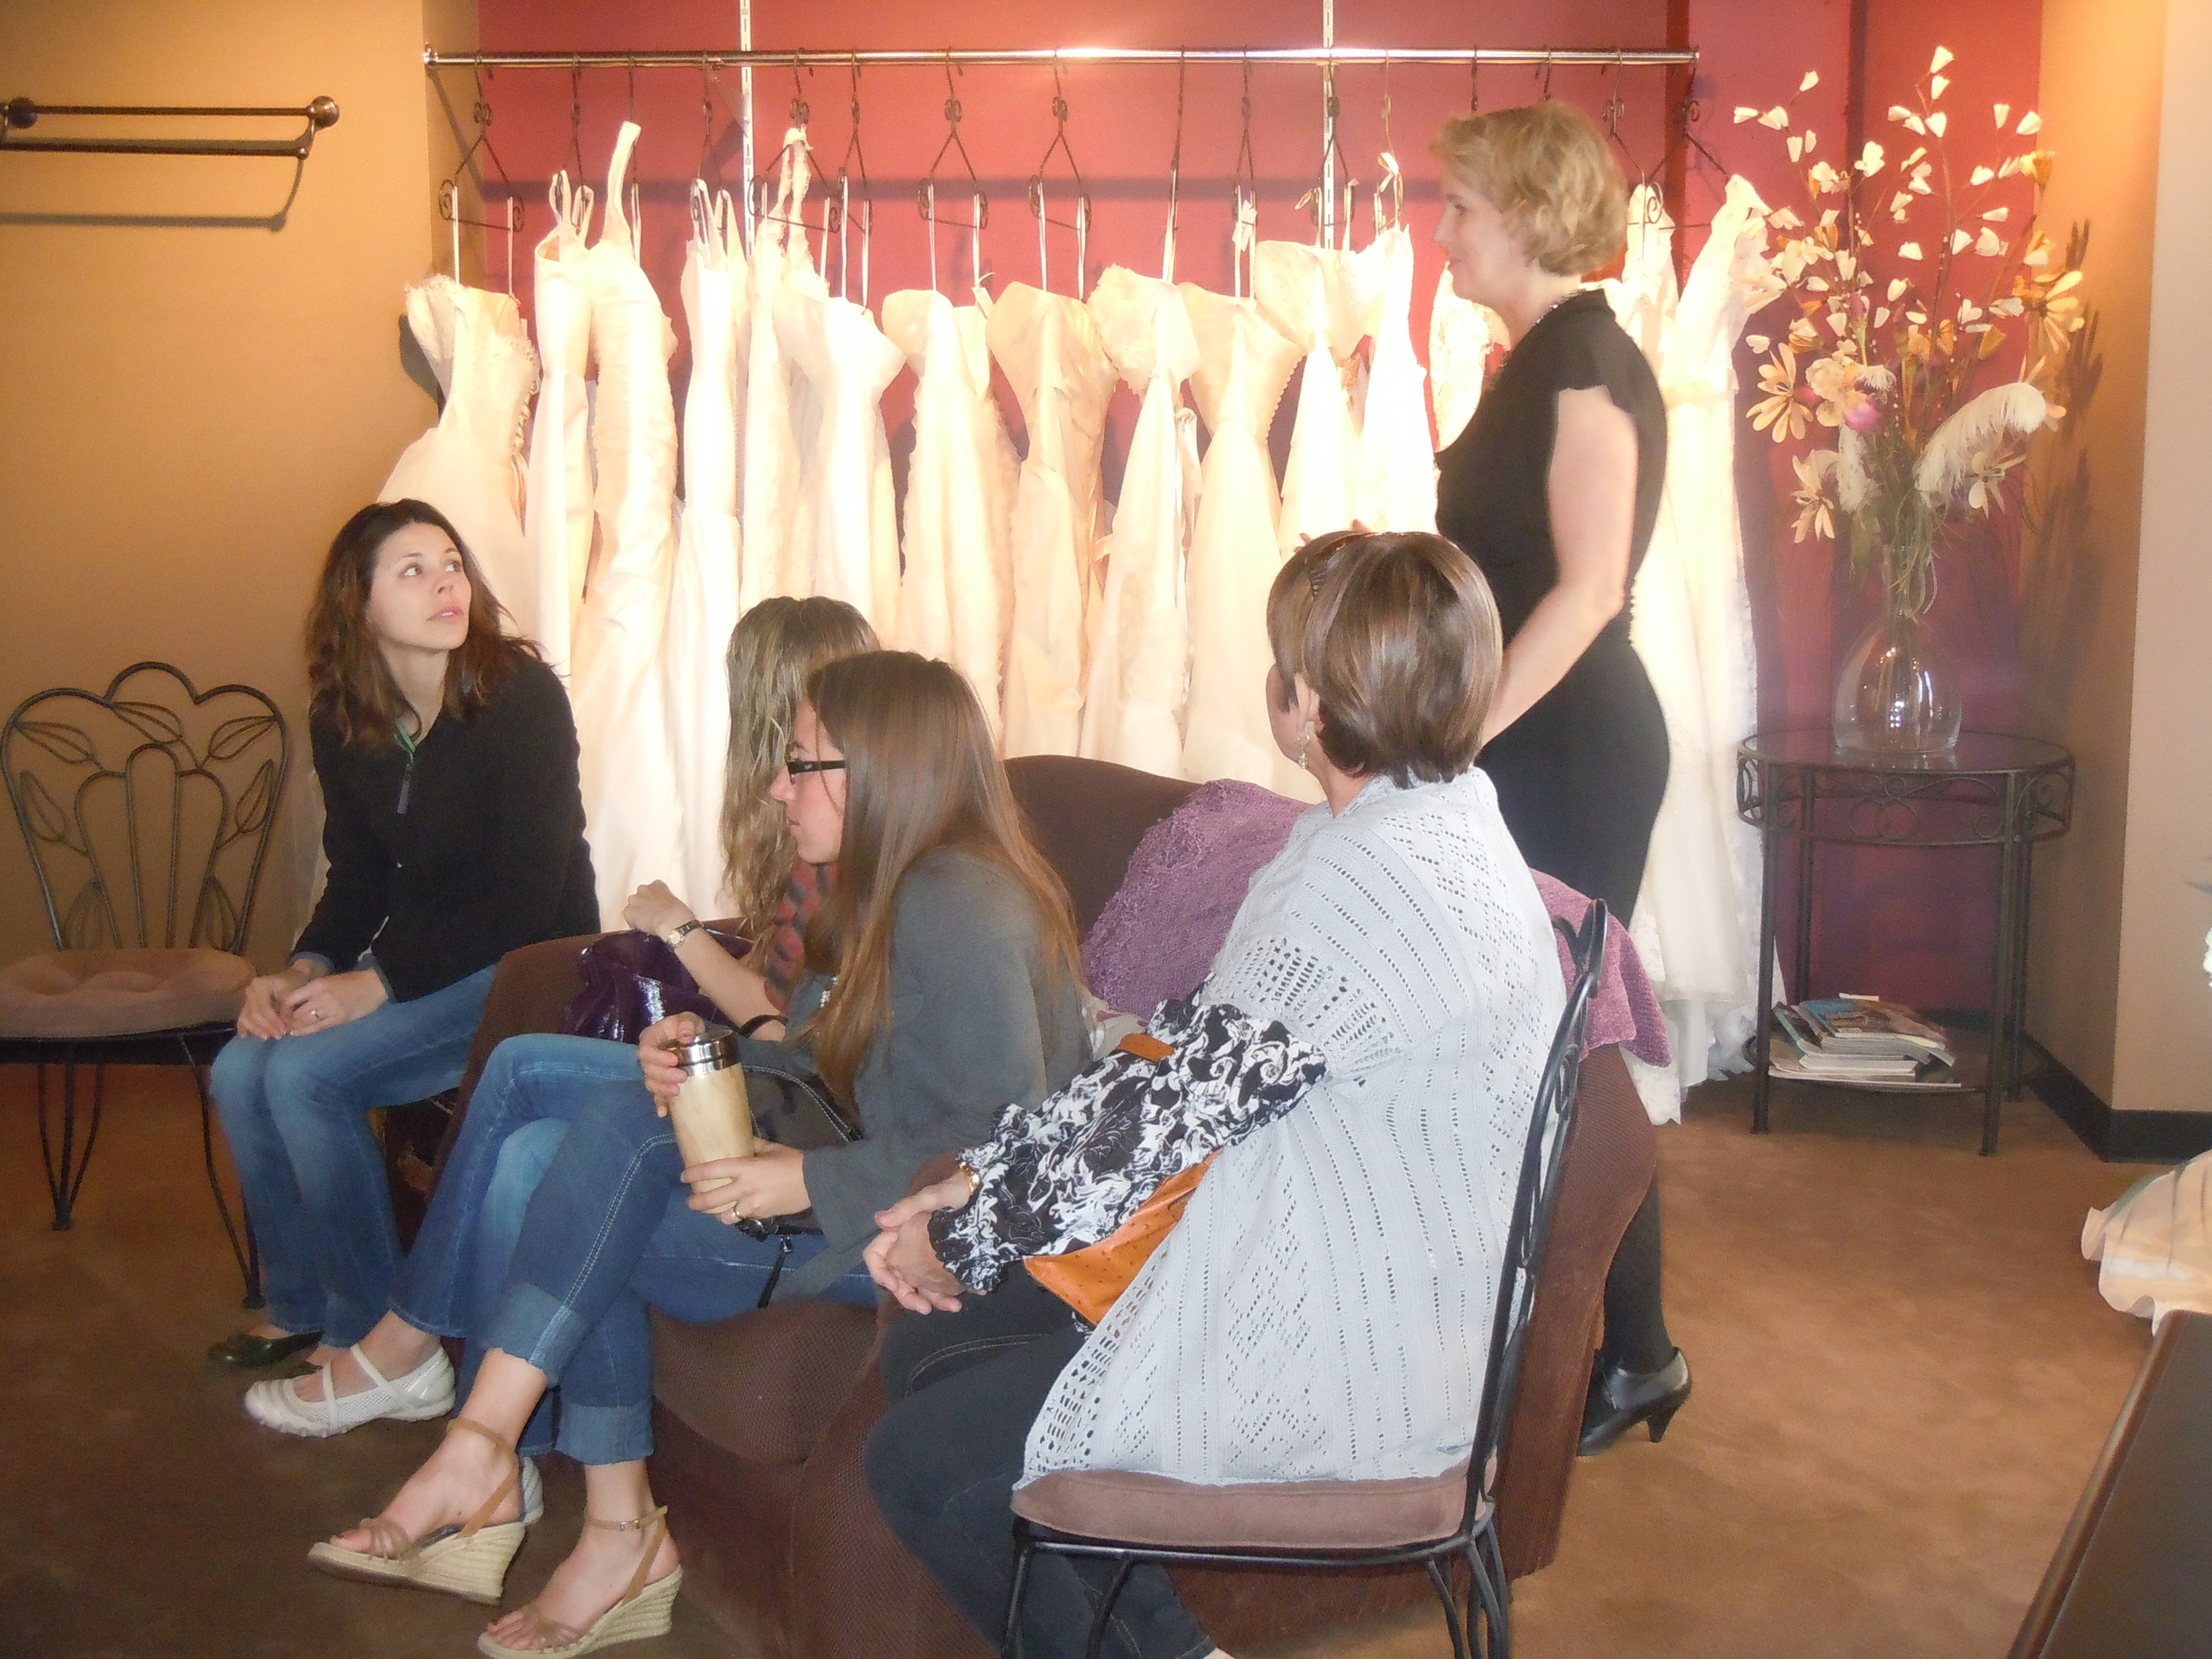 Hitched in the Highlands winner at Little White Dress Bridal Shop in Denver